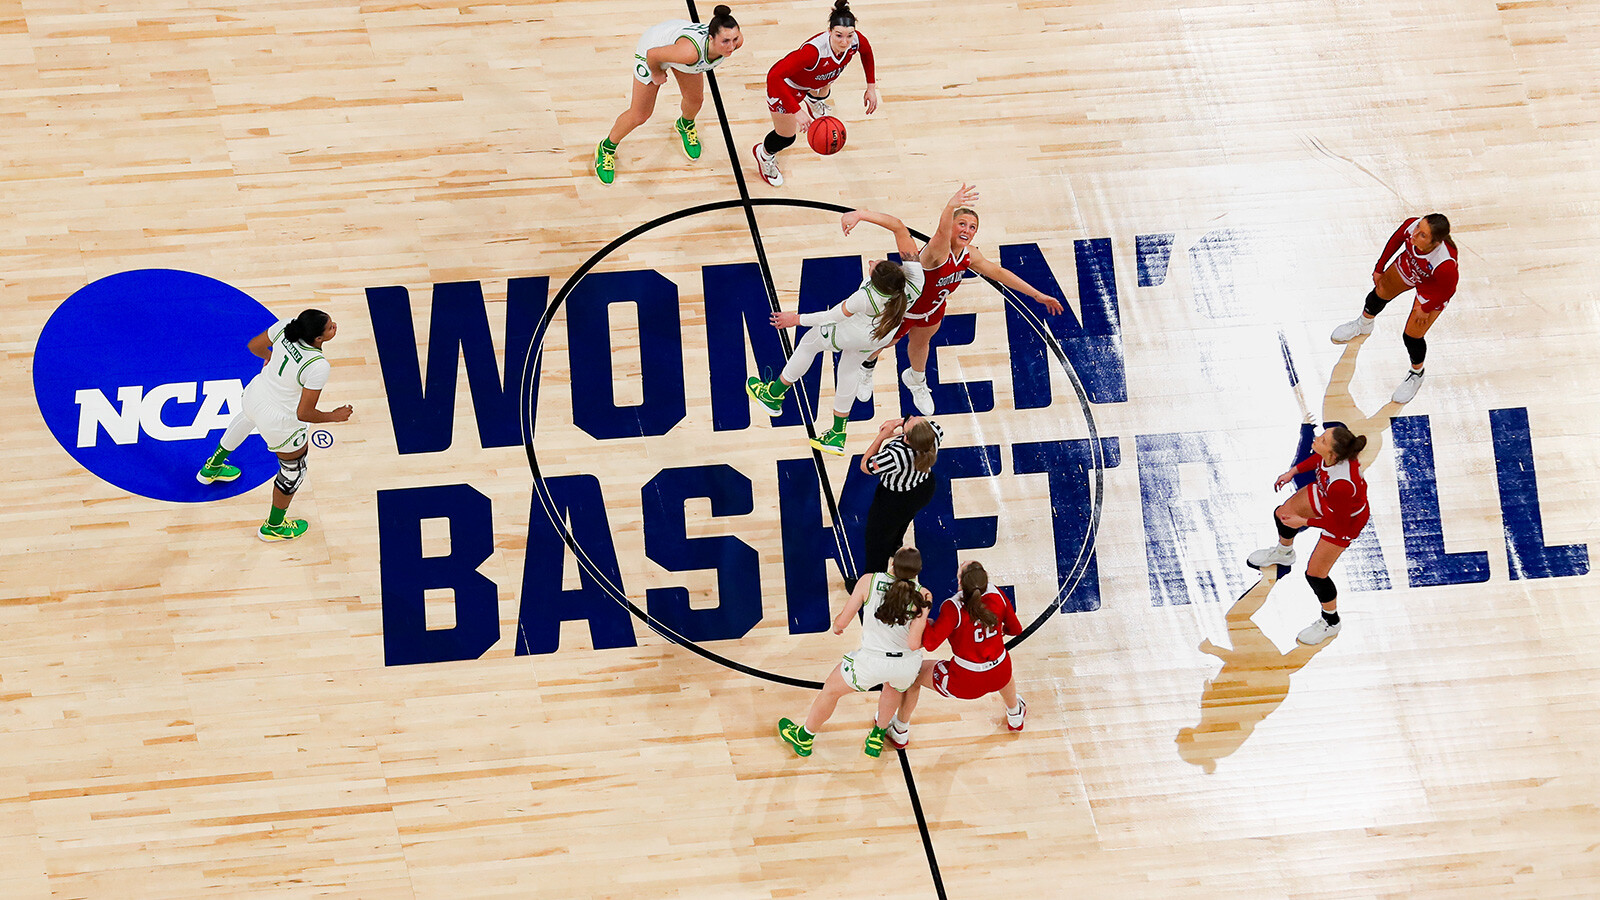 New report commissioned by NCAA finds a massive gender inequity in college basketball